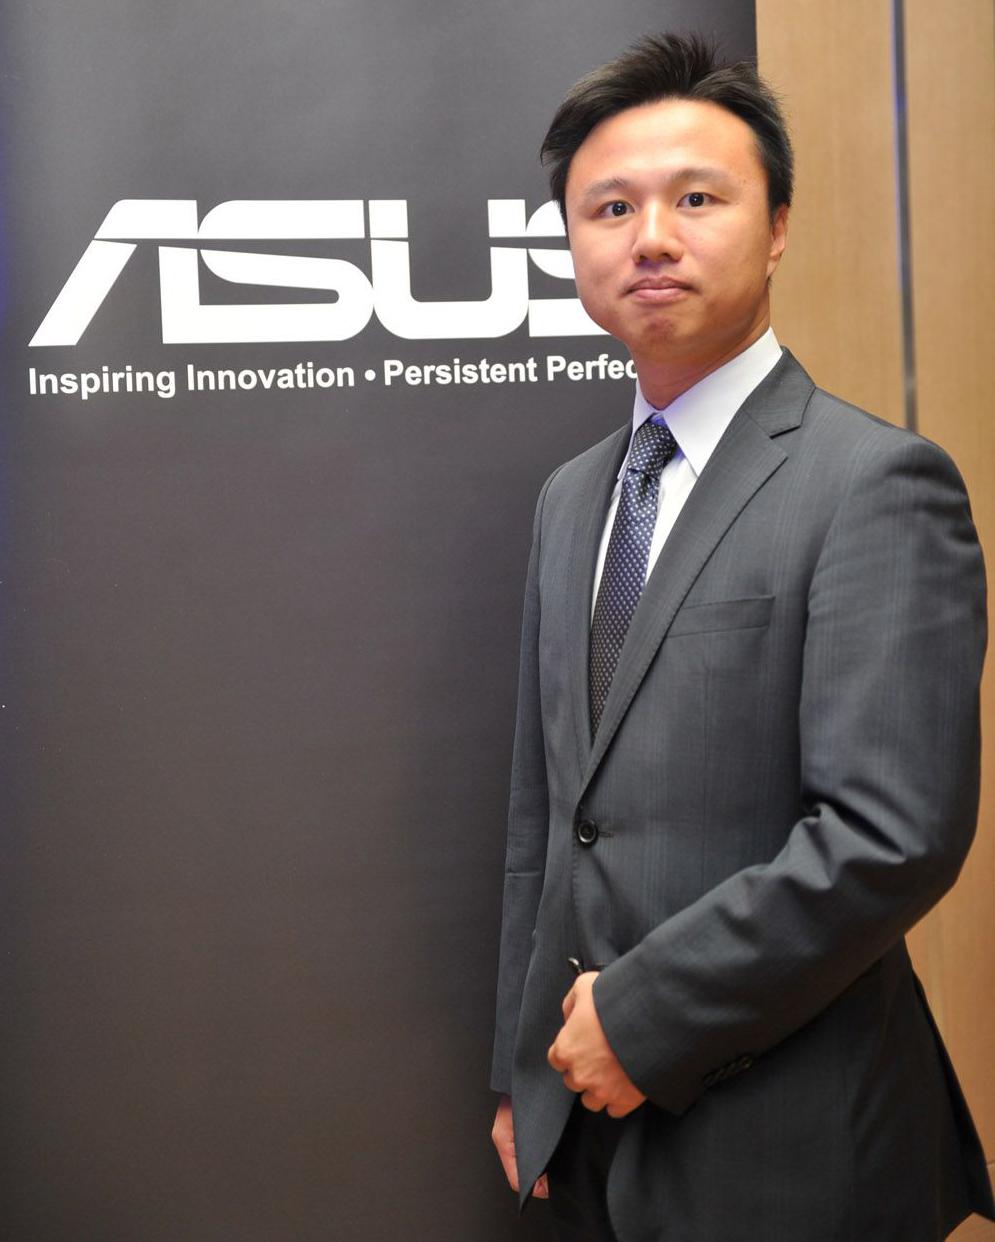 Mr. Peter Chang, Regional Head - South Asia & Country Manager - ASUS India